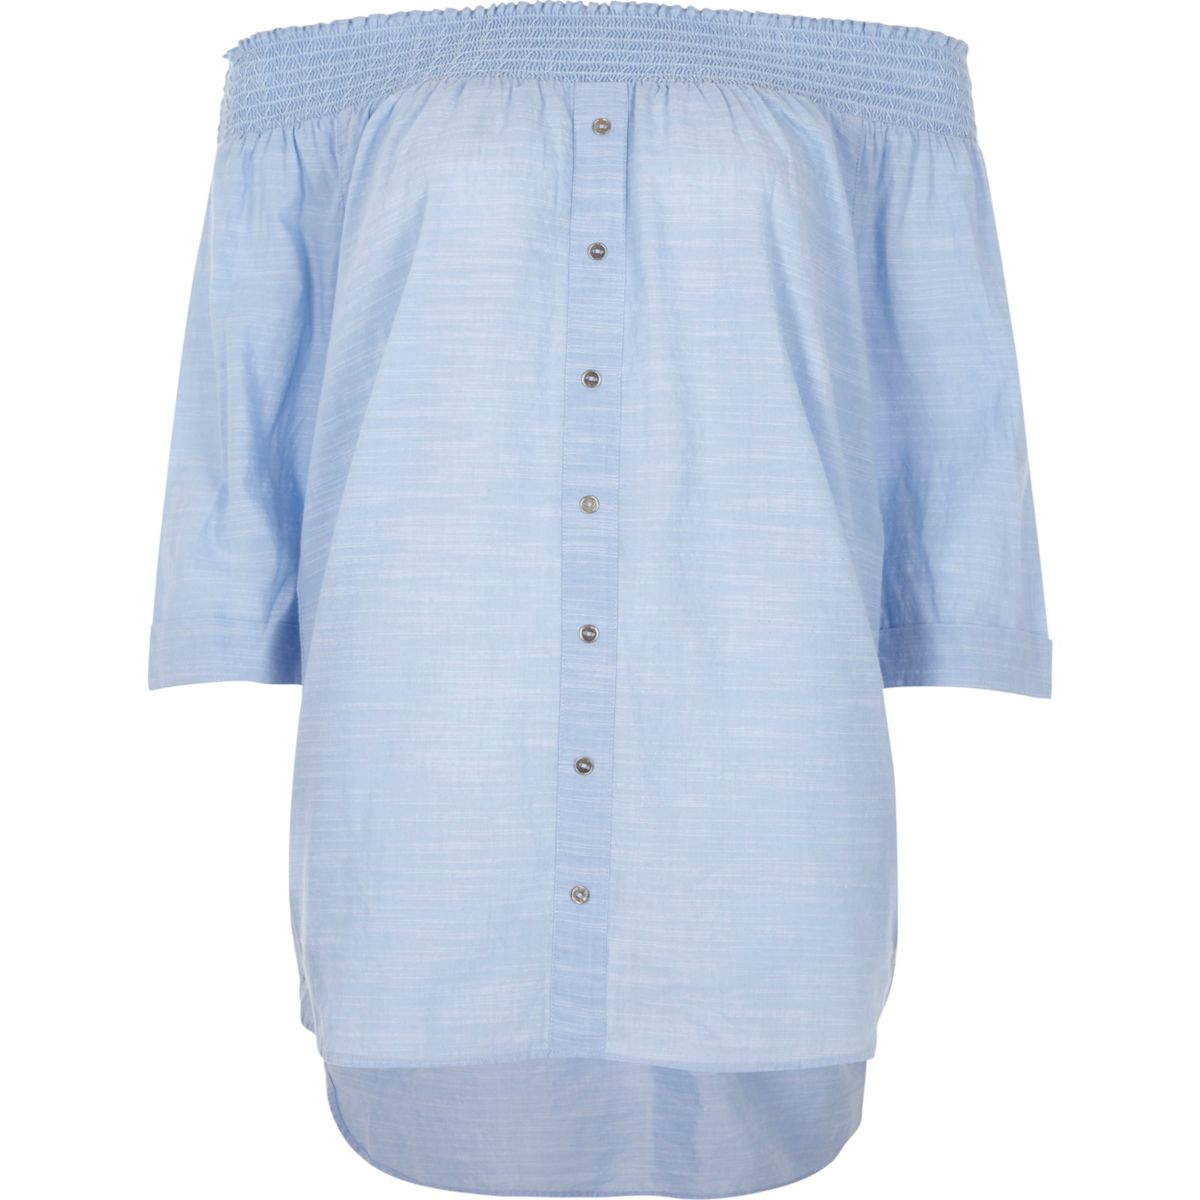 Light blue shirred bardot button front top